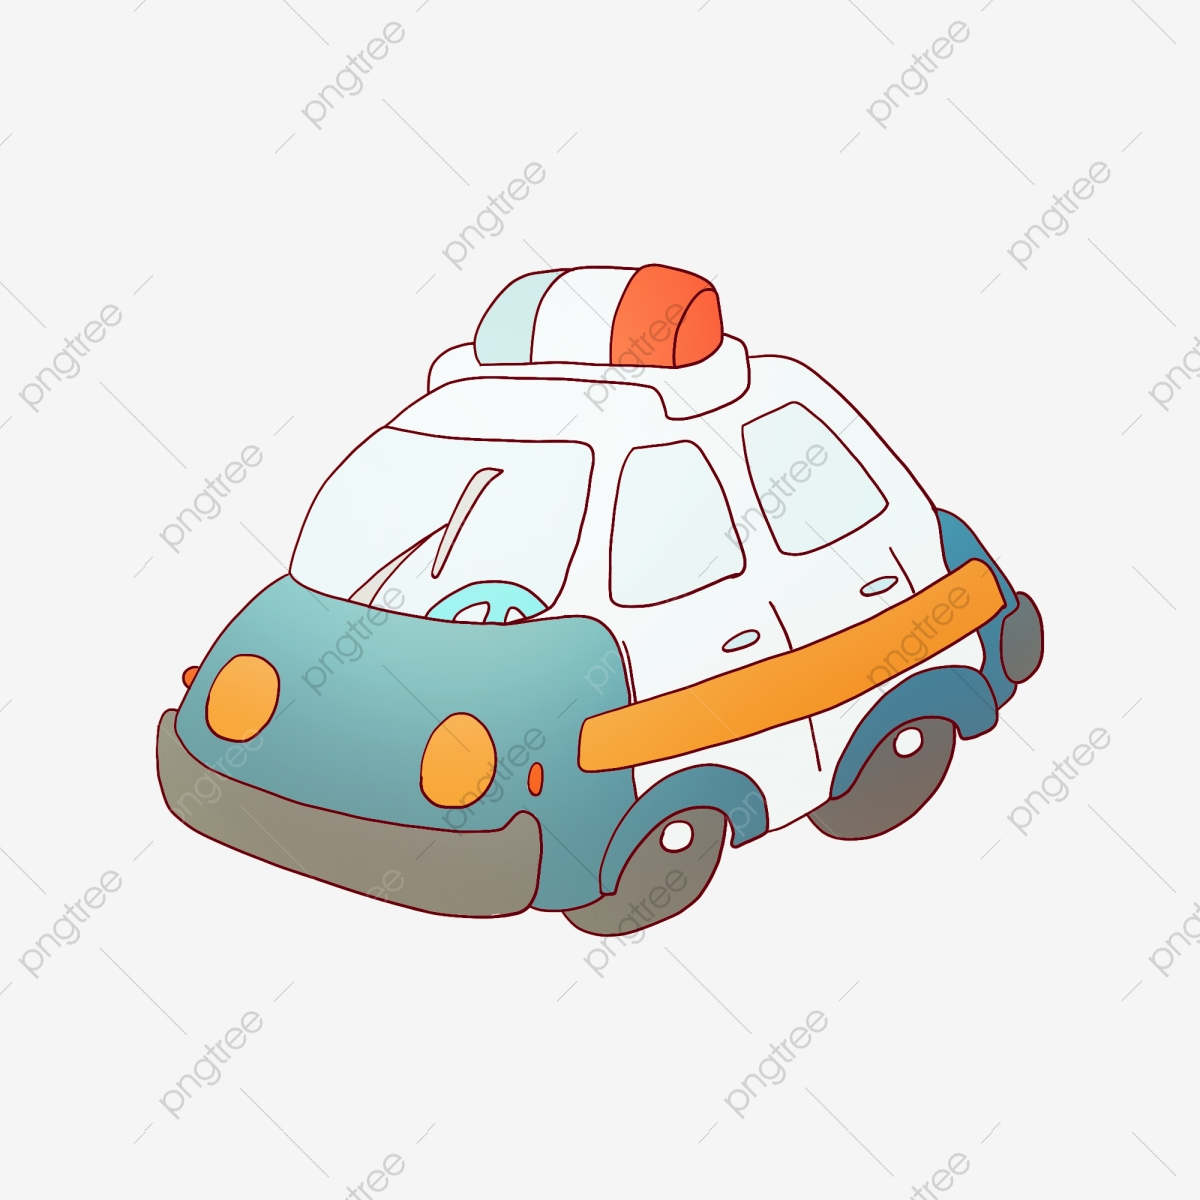 Blue Police Car Cartoon Illustration Blue Police Car Police Car On Duty Police Png Transparent Clipart Image And Psd File For Free Download